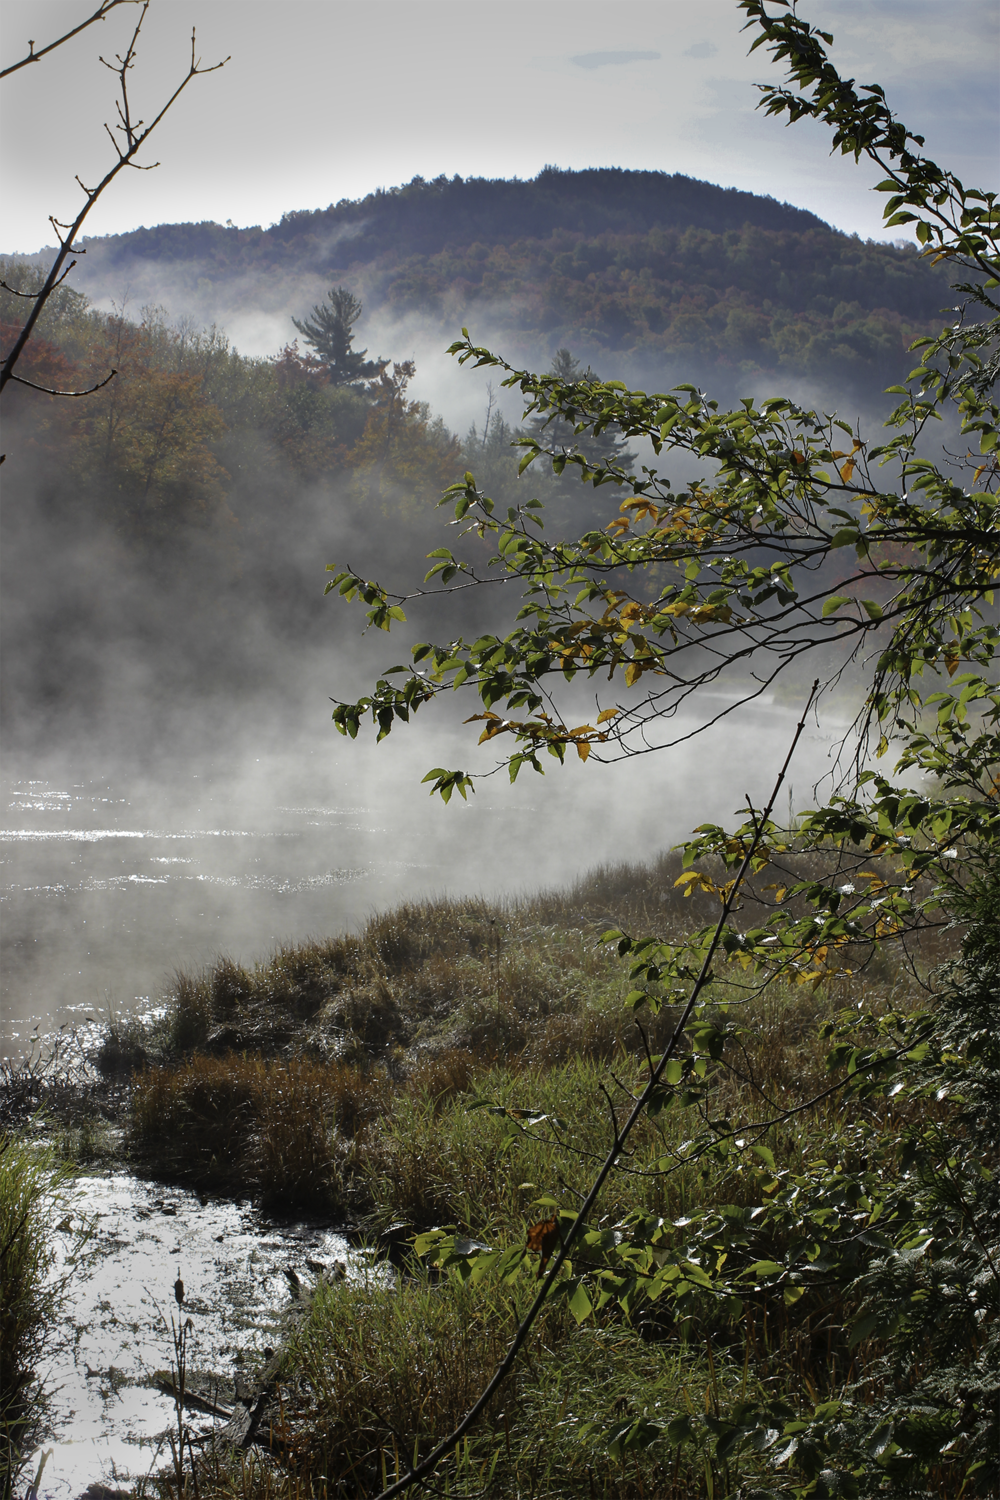 Misty Morning, Fall 2014